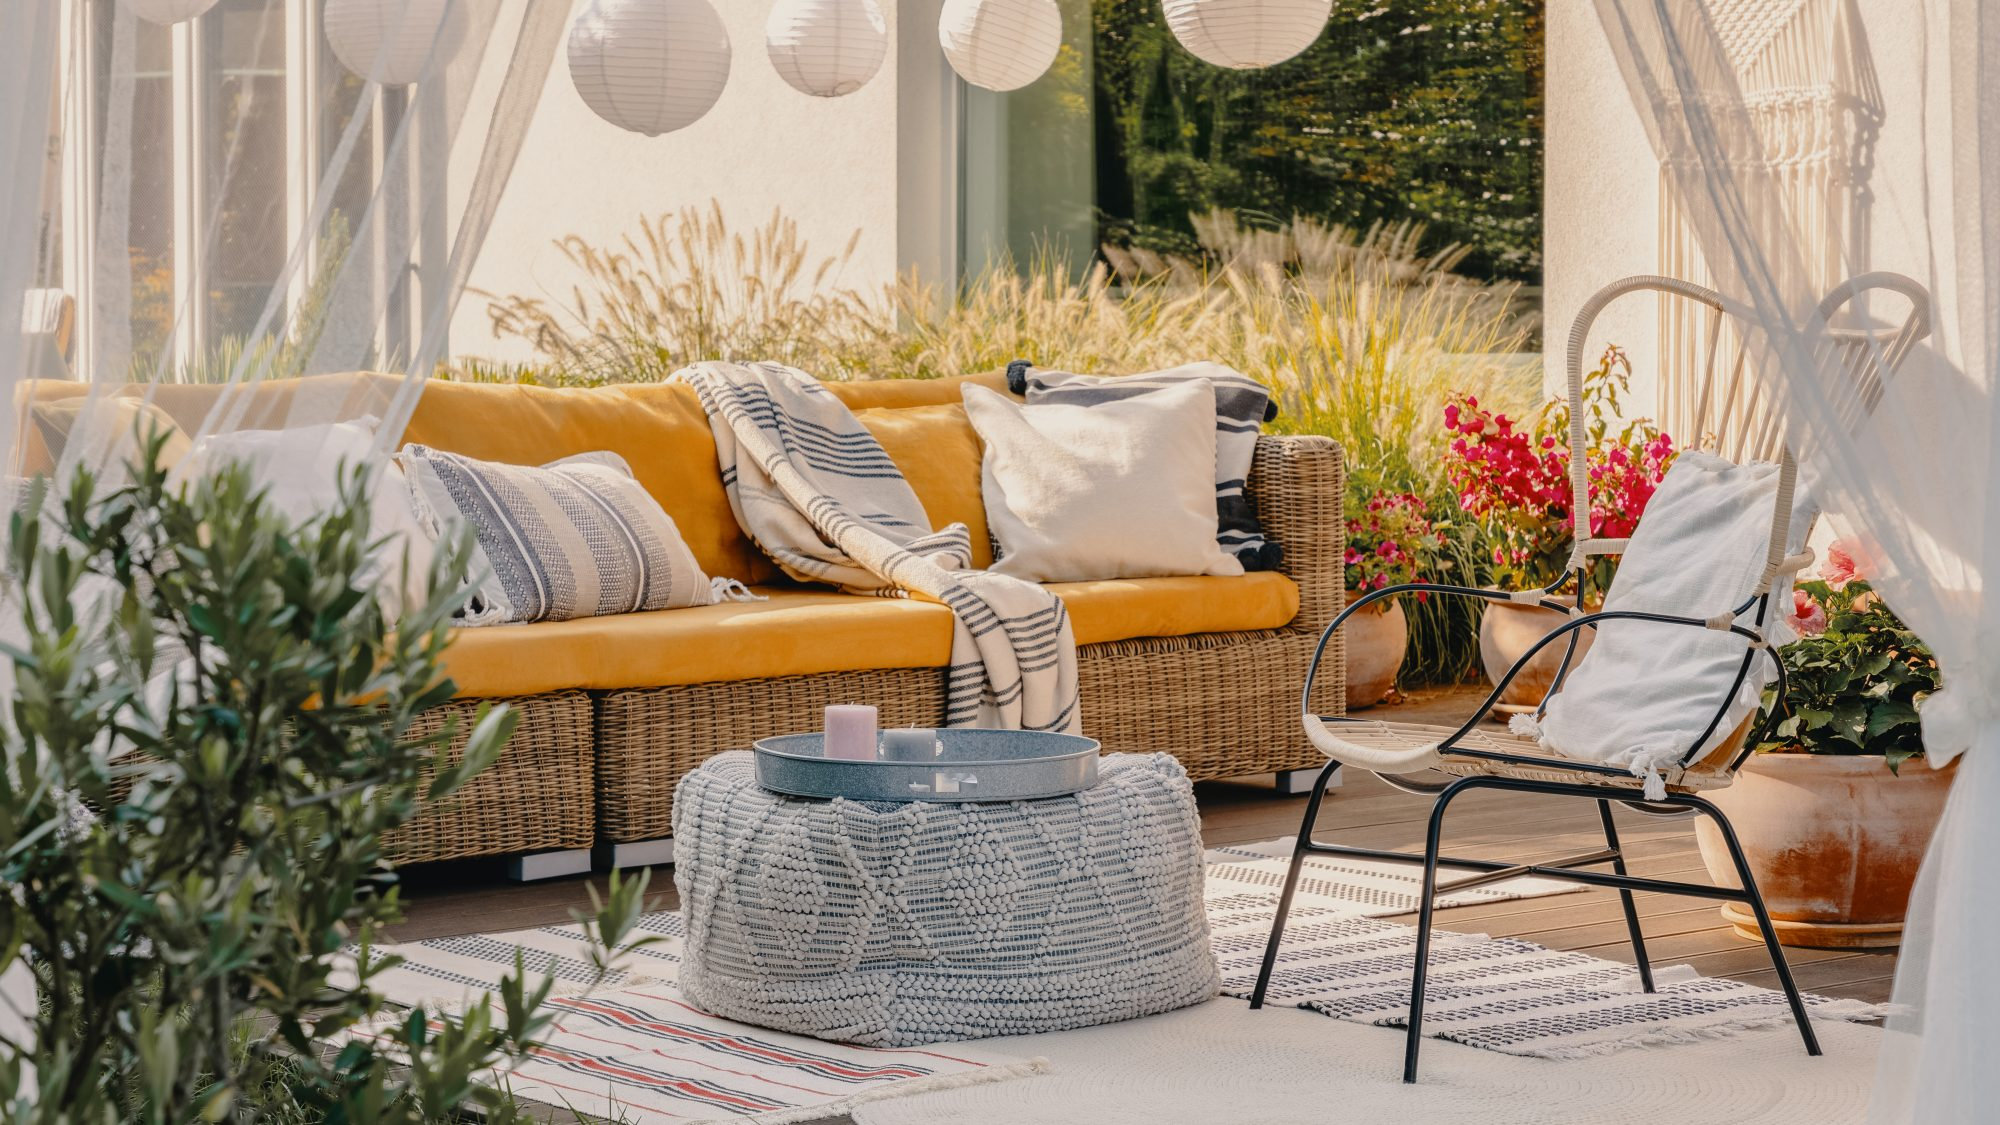 Outdoor gear for fall hosting - fall porch decor for coronavirus hosting